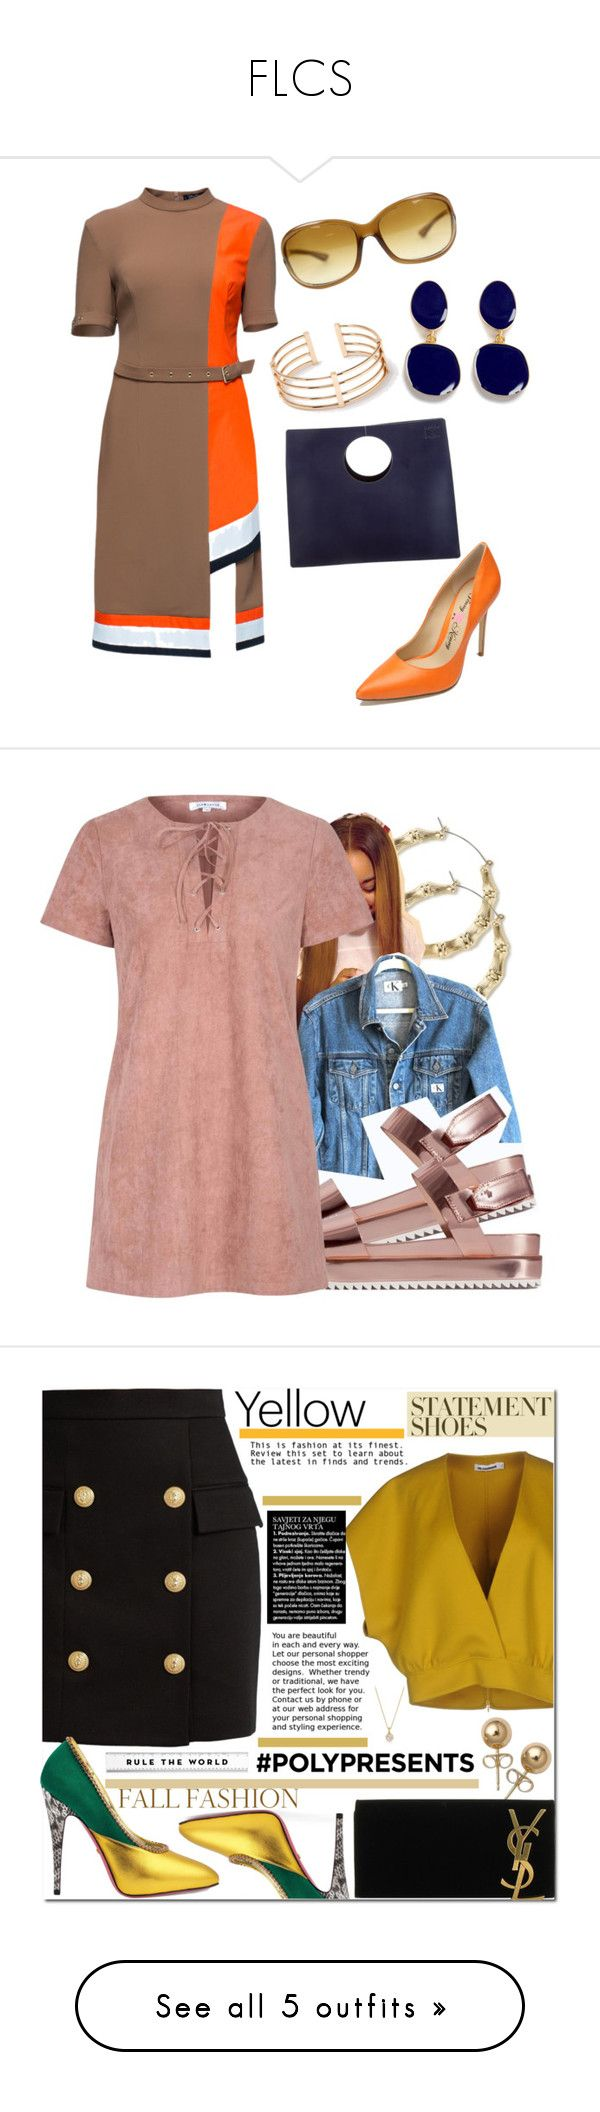 """""""FLCS"""" by toddfrom53rd ❤ liked on Polyvore featuring Lattori, Loewe, Tom Ford, Penny Loves Kenny, Kenneth Jay Lane, Calvin Klein Jeans, Zara, Glamorous, Balmain and Jil Sander"""